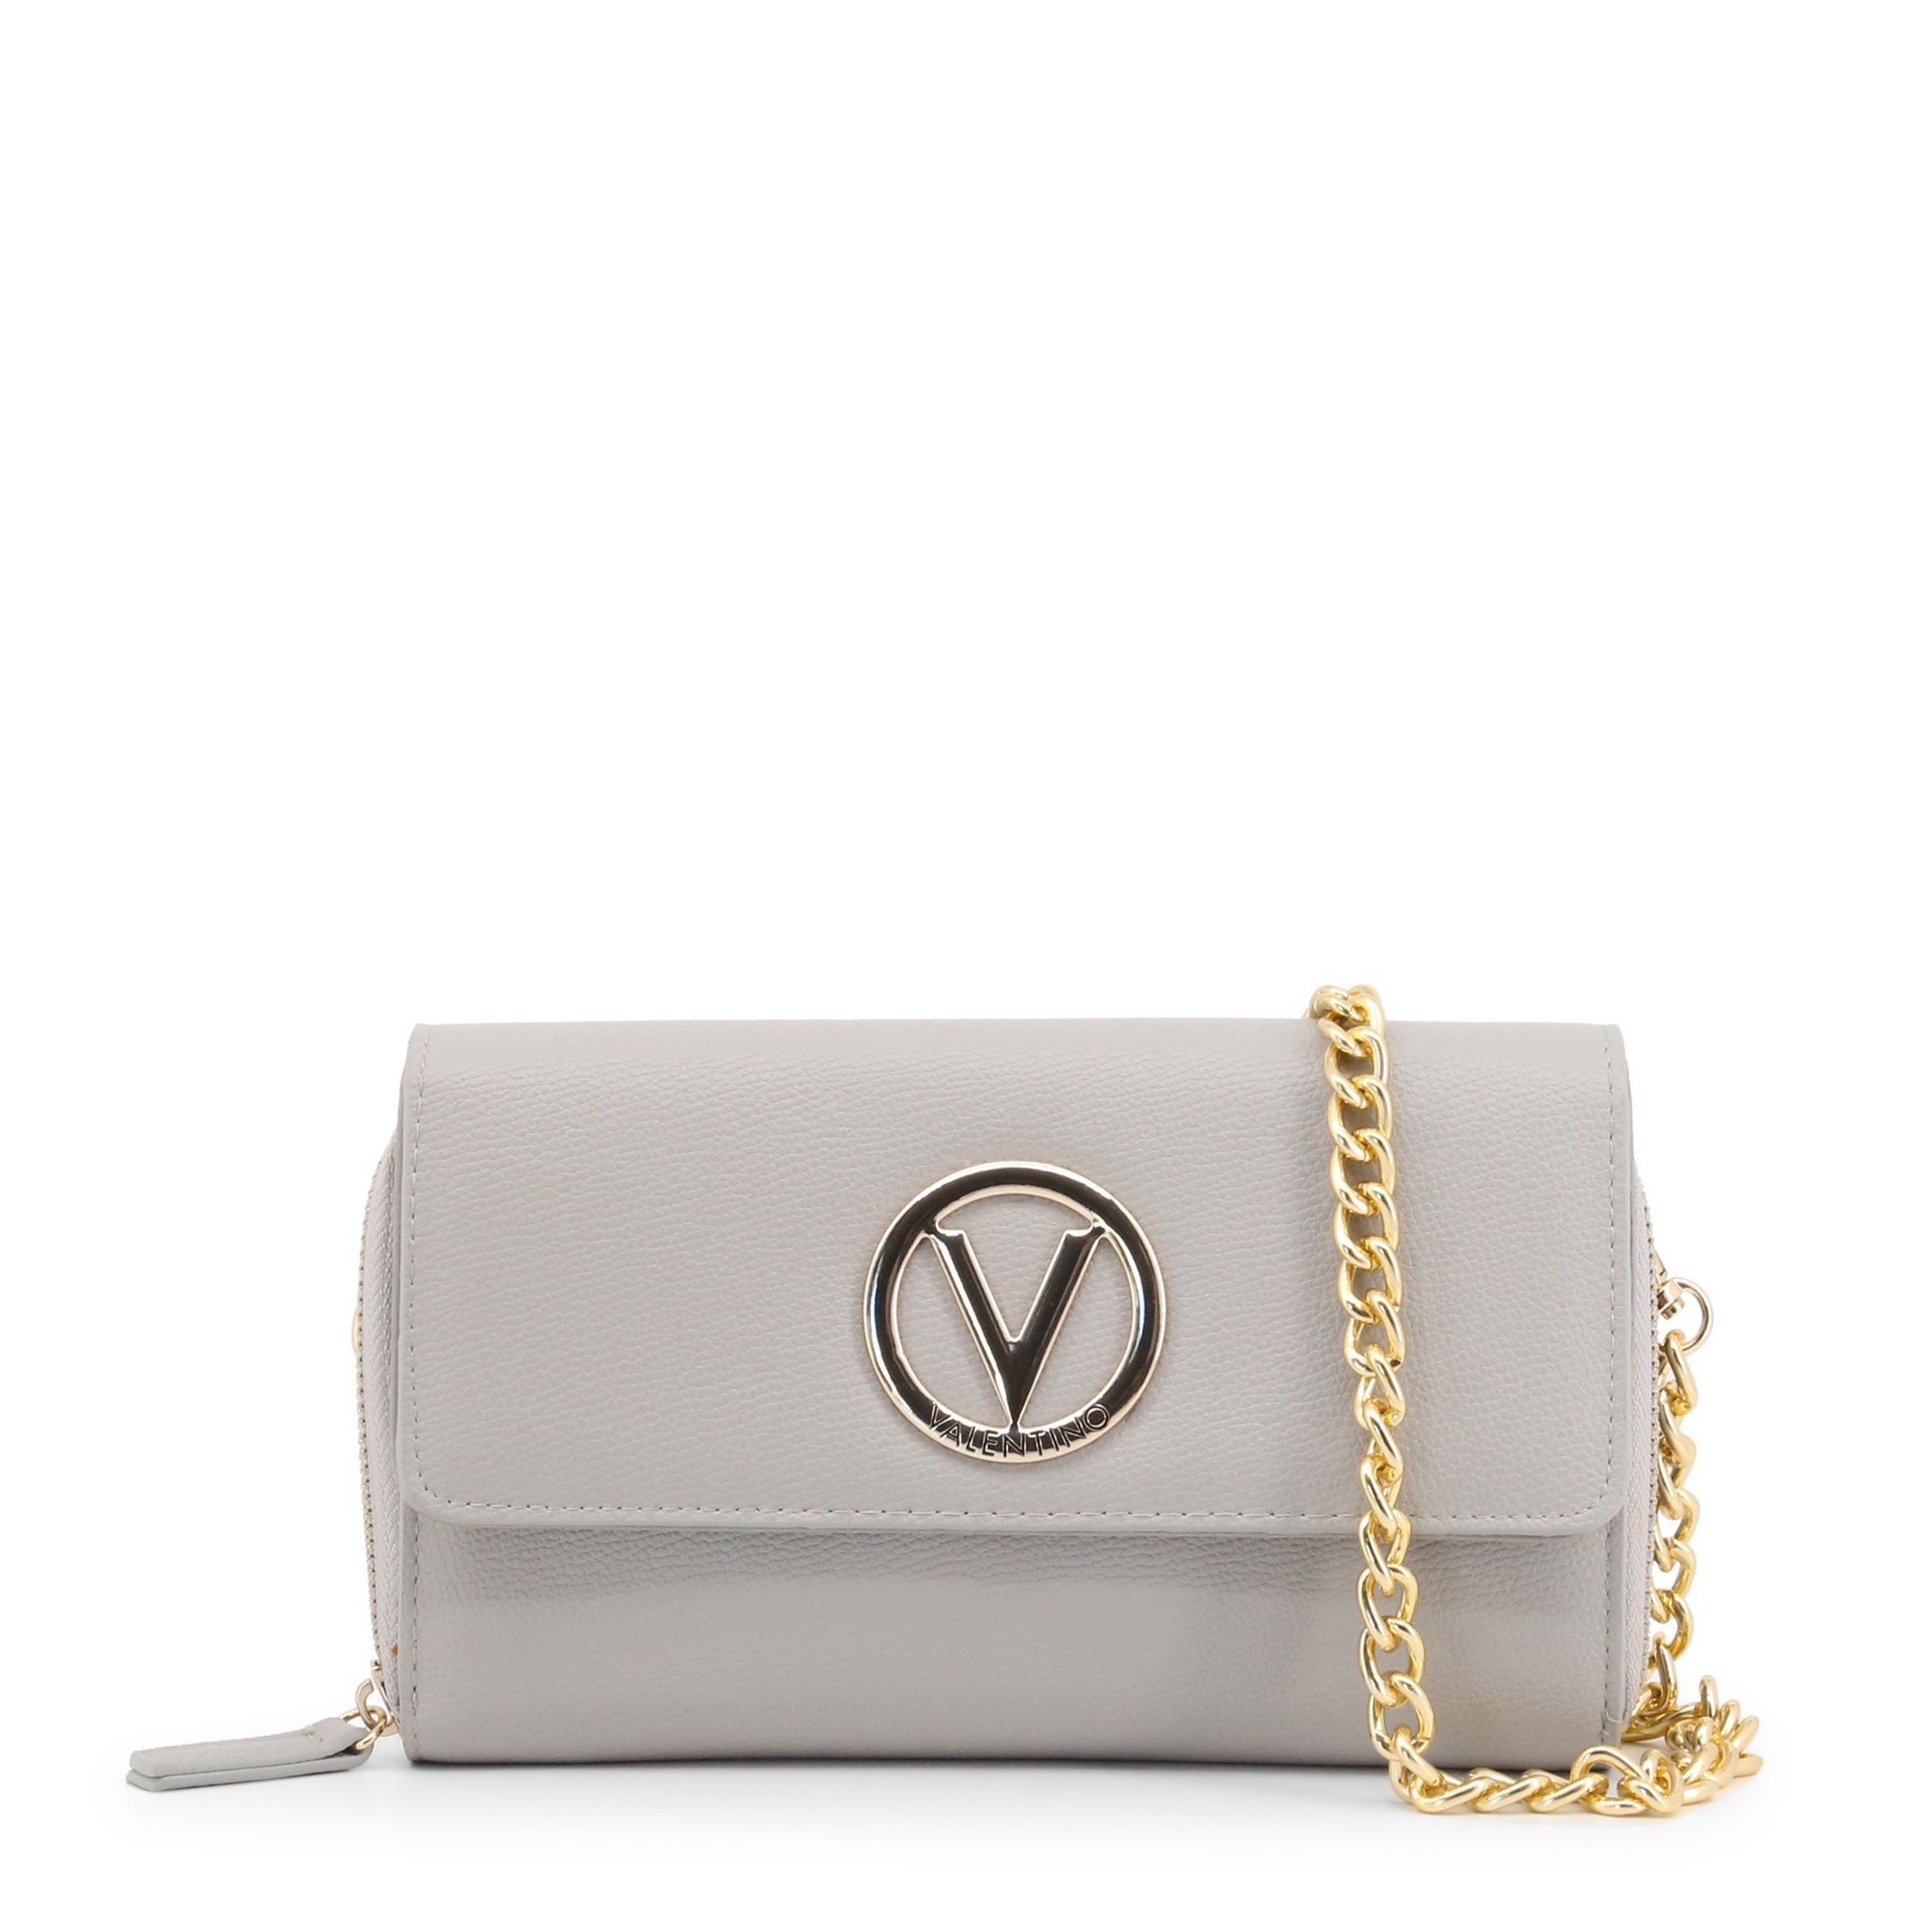 Valentino by Mario Valentino Women's Clutch Bag Various Colours SAX-VBS3JJ06 - grey NOSIZE